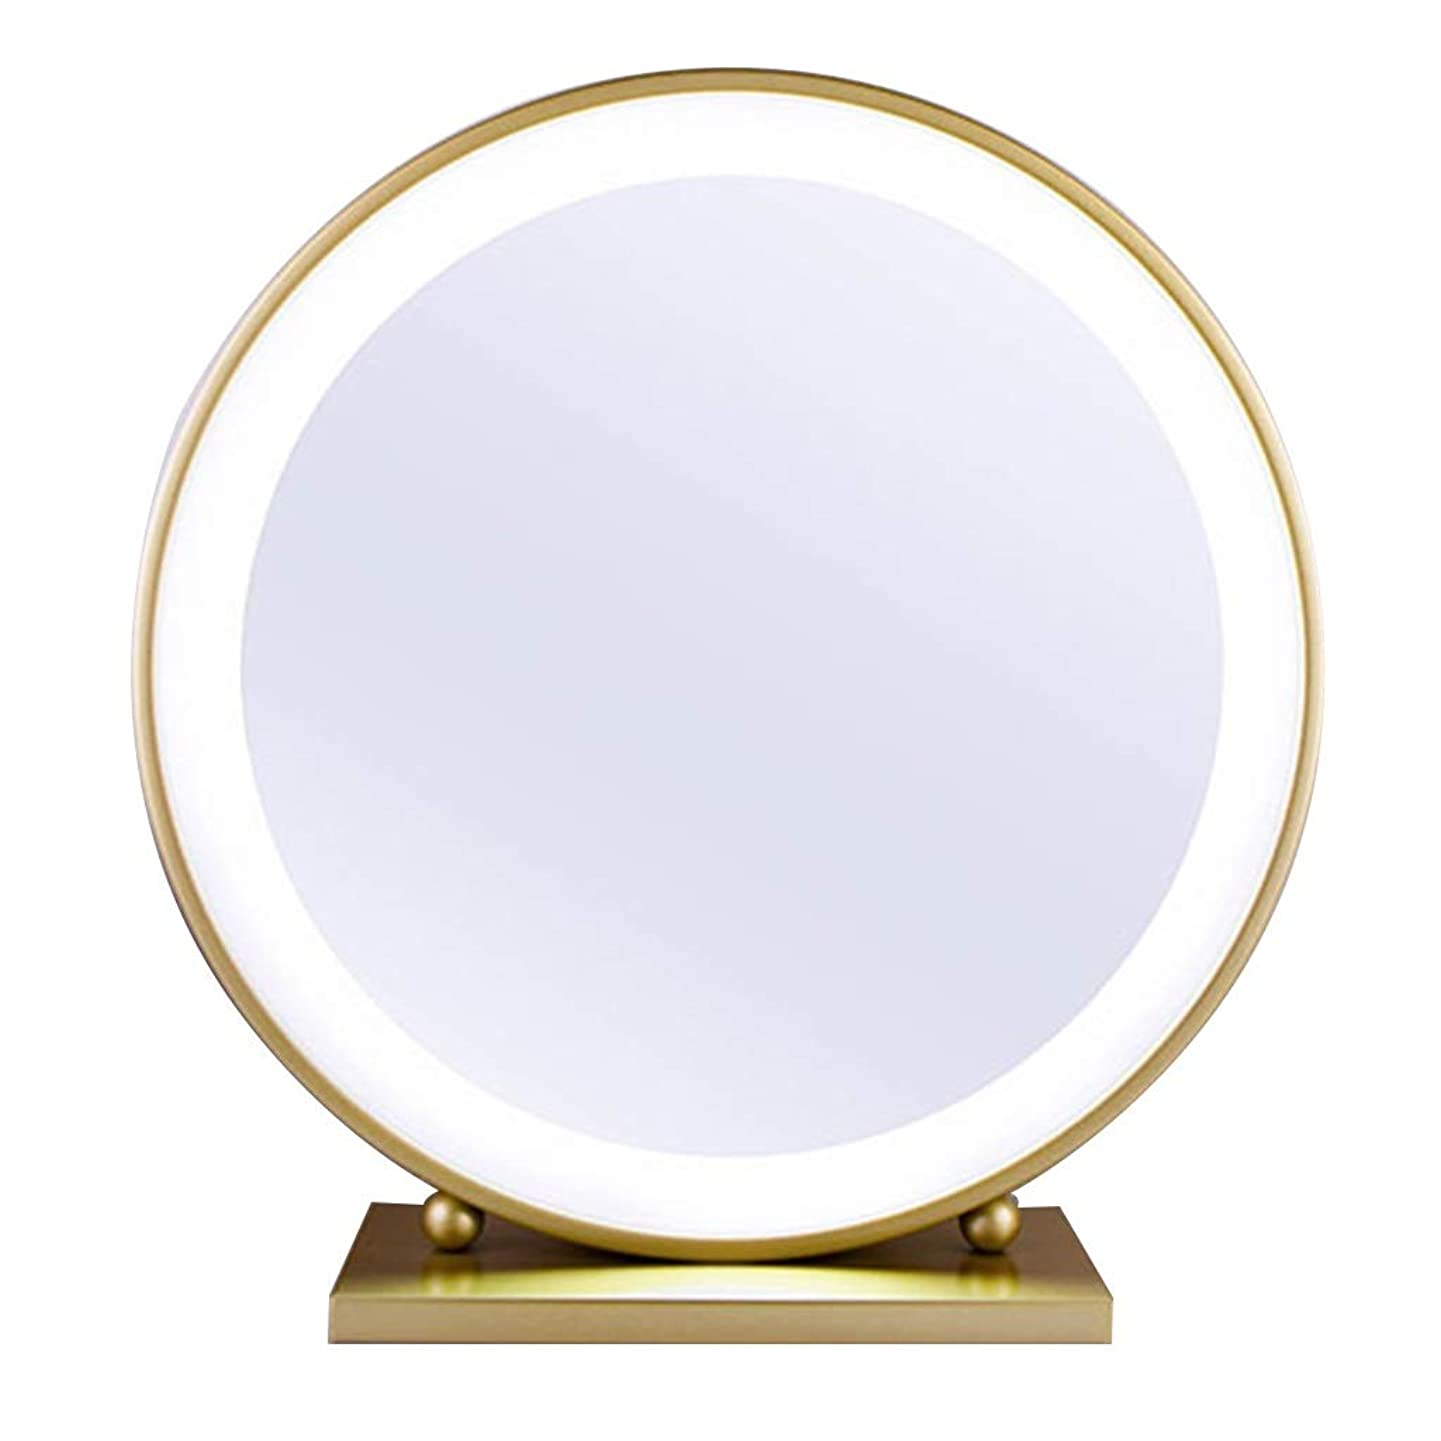 Dgeg Makeup Mirror Simple Gold Round Tabletop Mirrors for Dressing Table Bedroom (color : B(with lights), Size : 50cm)